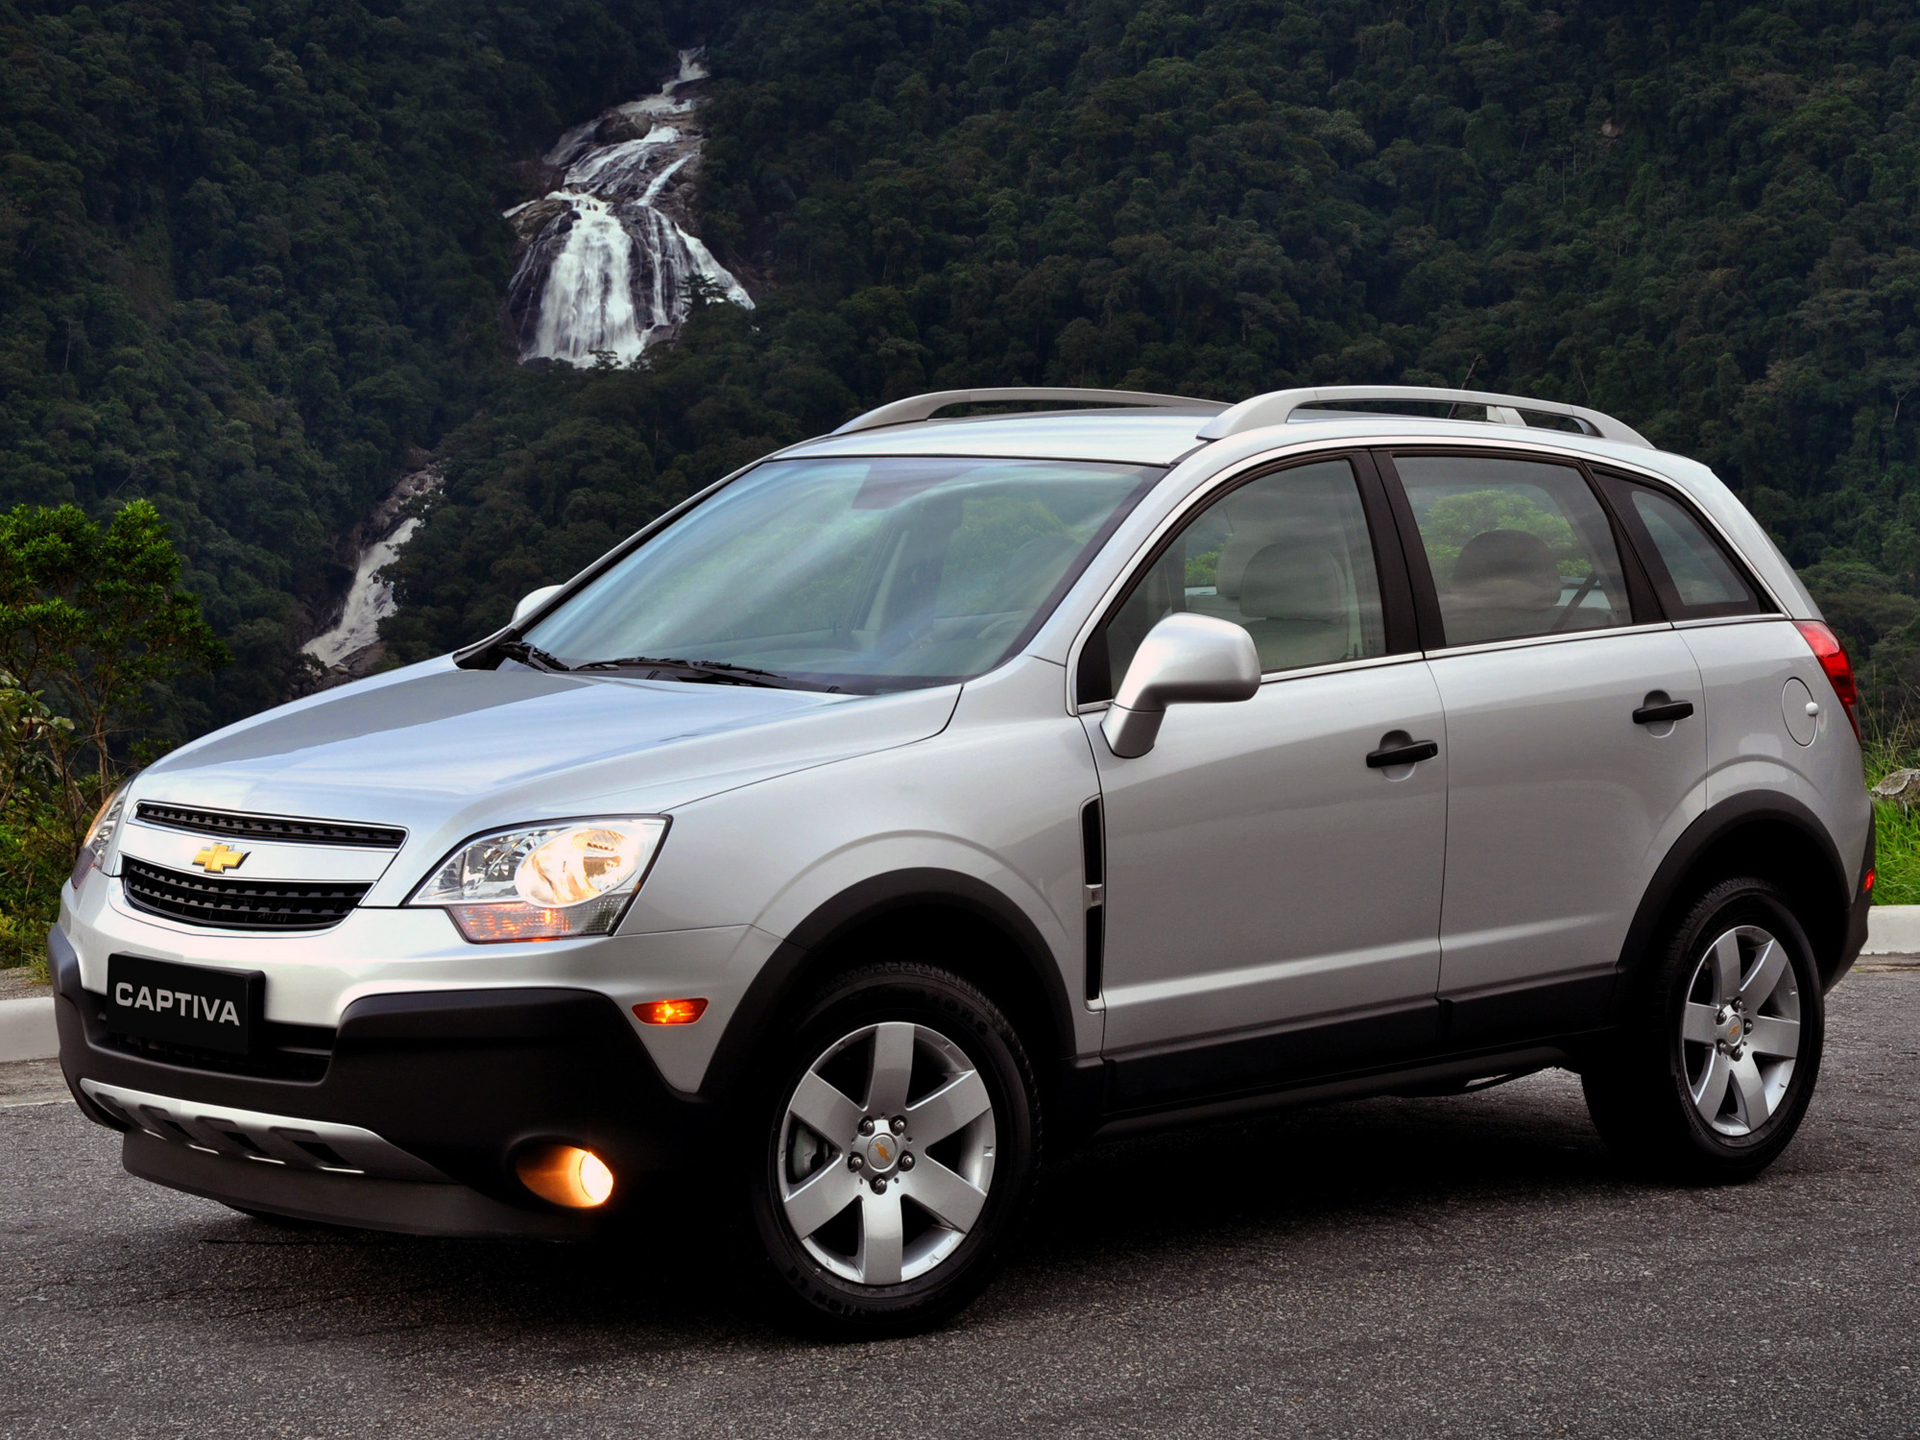 chevrolet captiva 2008 images #10